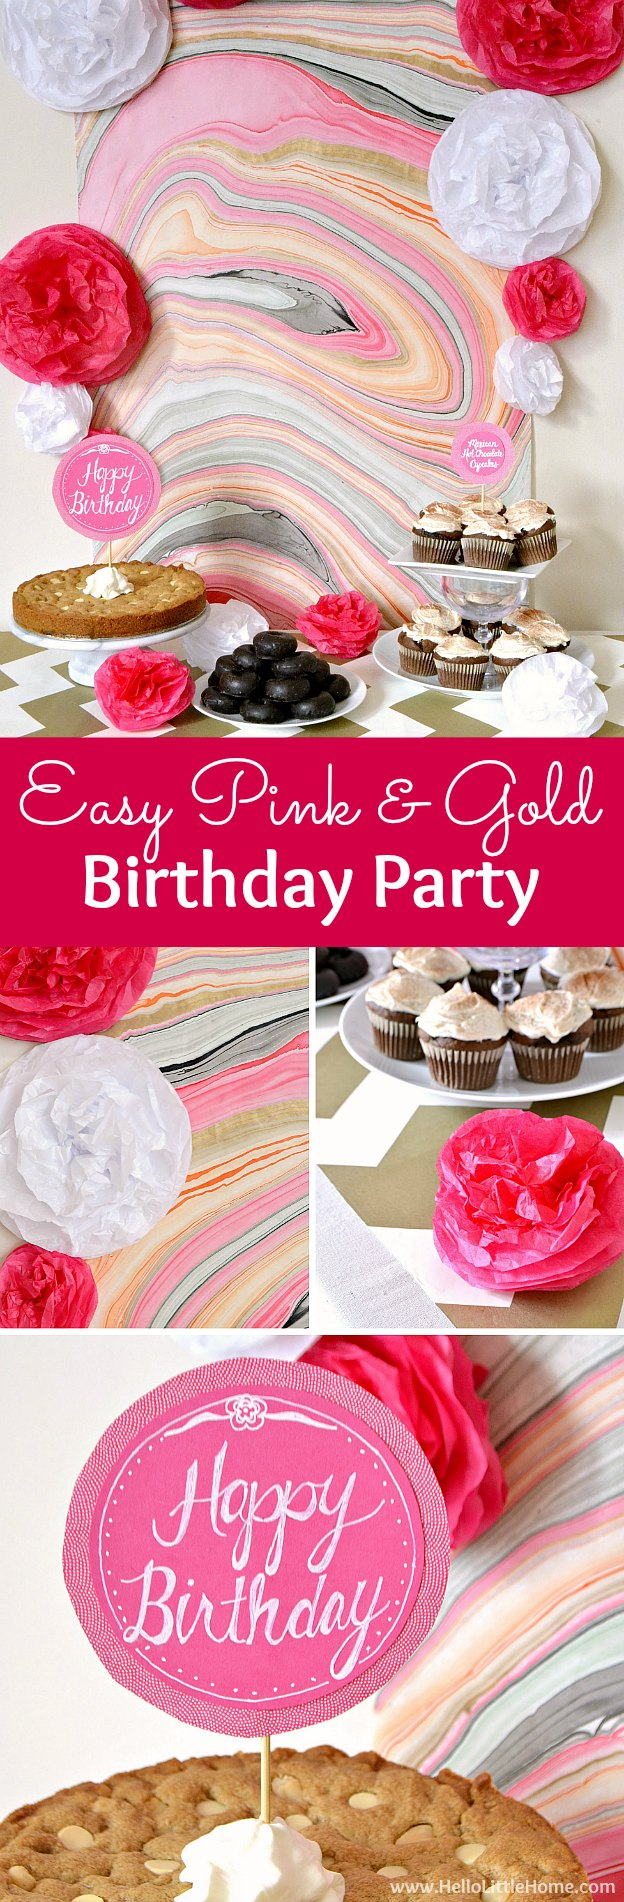 Easy Pink and Gold Birthday Party! Celebrate someone special with these fun, easy DIY birthday party decor ideas. This festive pink and gold party theme, featuring DIY tissue puffs, a marble backdrop, and a chocolate sweets tables, is a cheery addition to any fiesta! | Hello Little Home